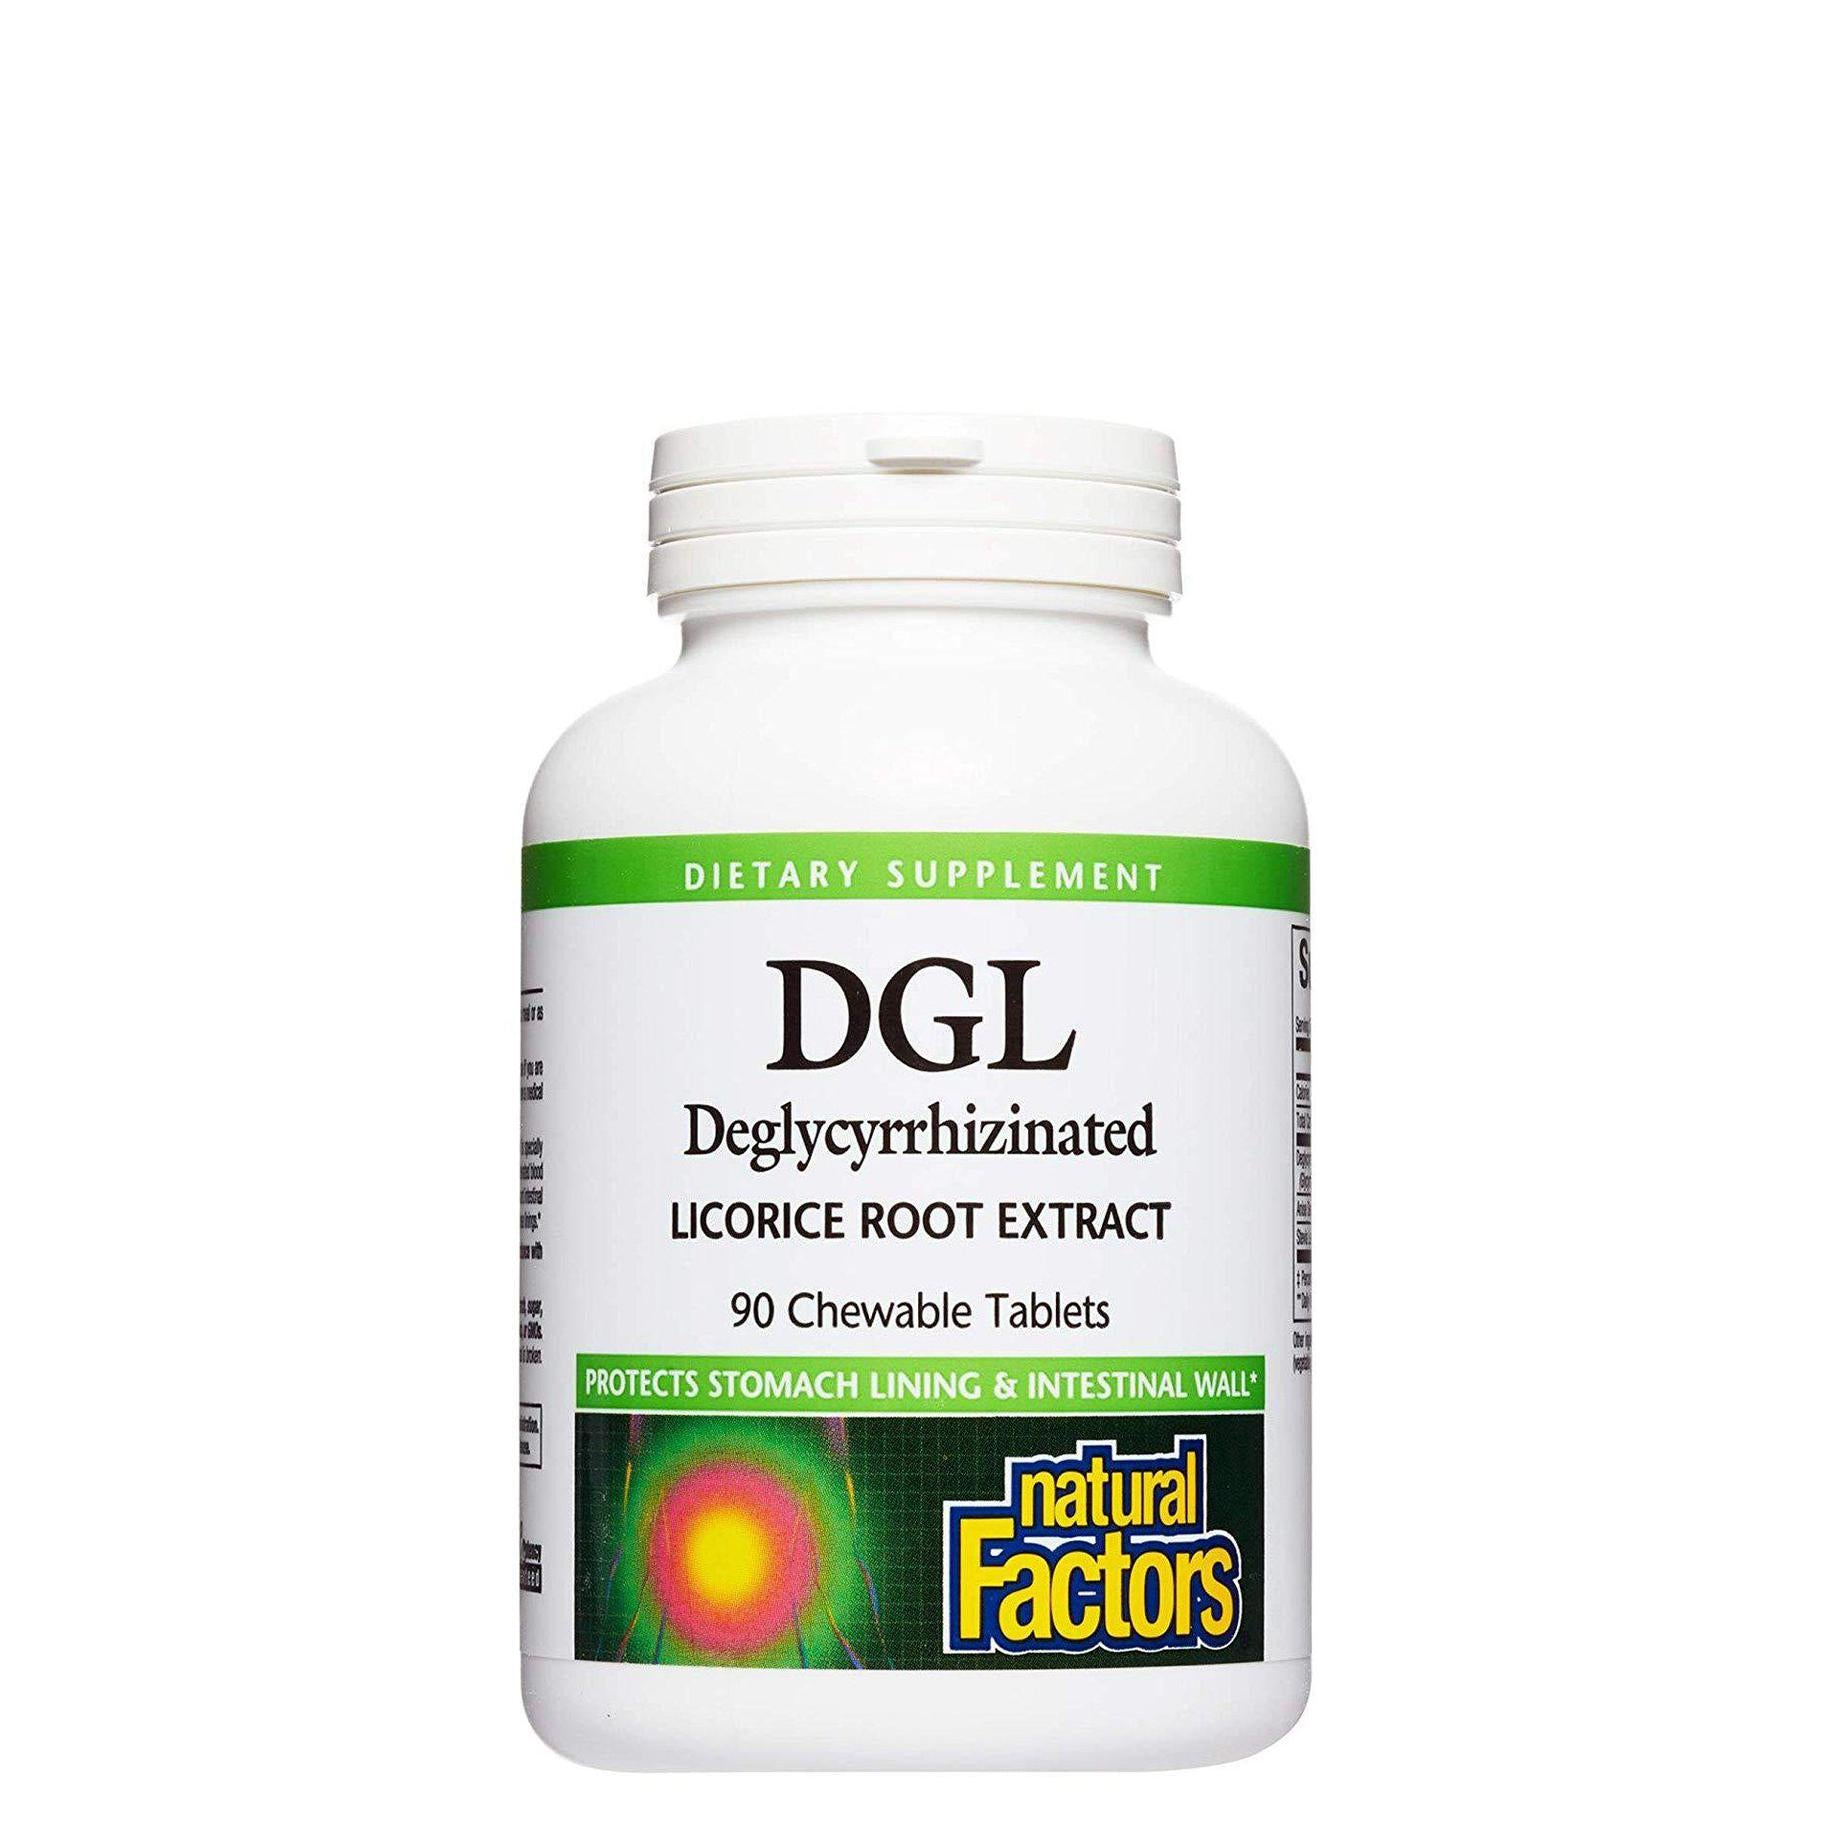 Natural Factors, DGL 400 mg, Deglycyrrhizinated Licorice Root Extract, 90 Chewable Tablets